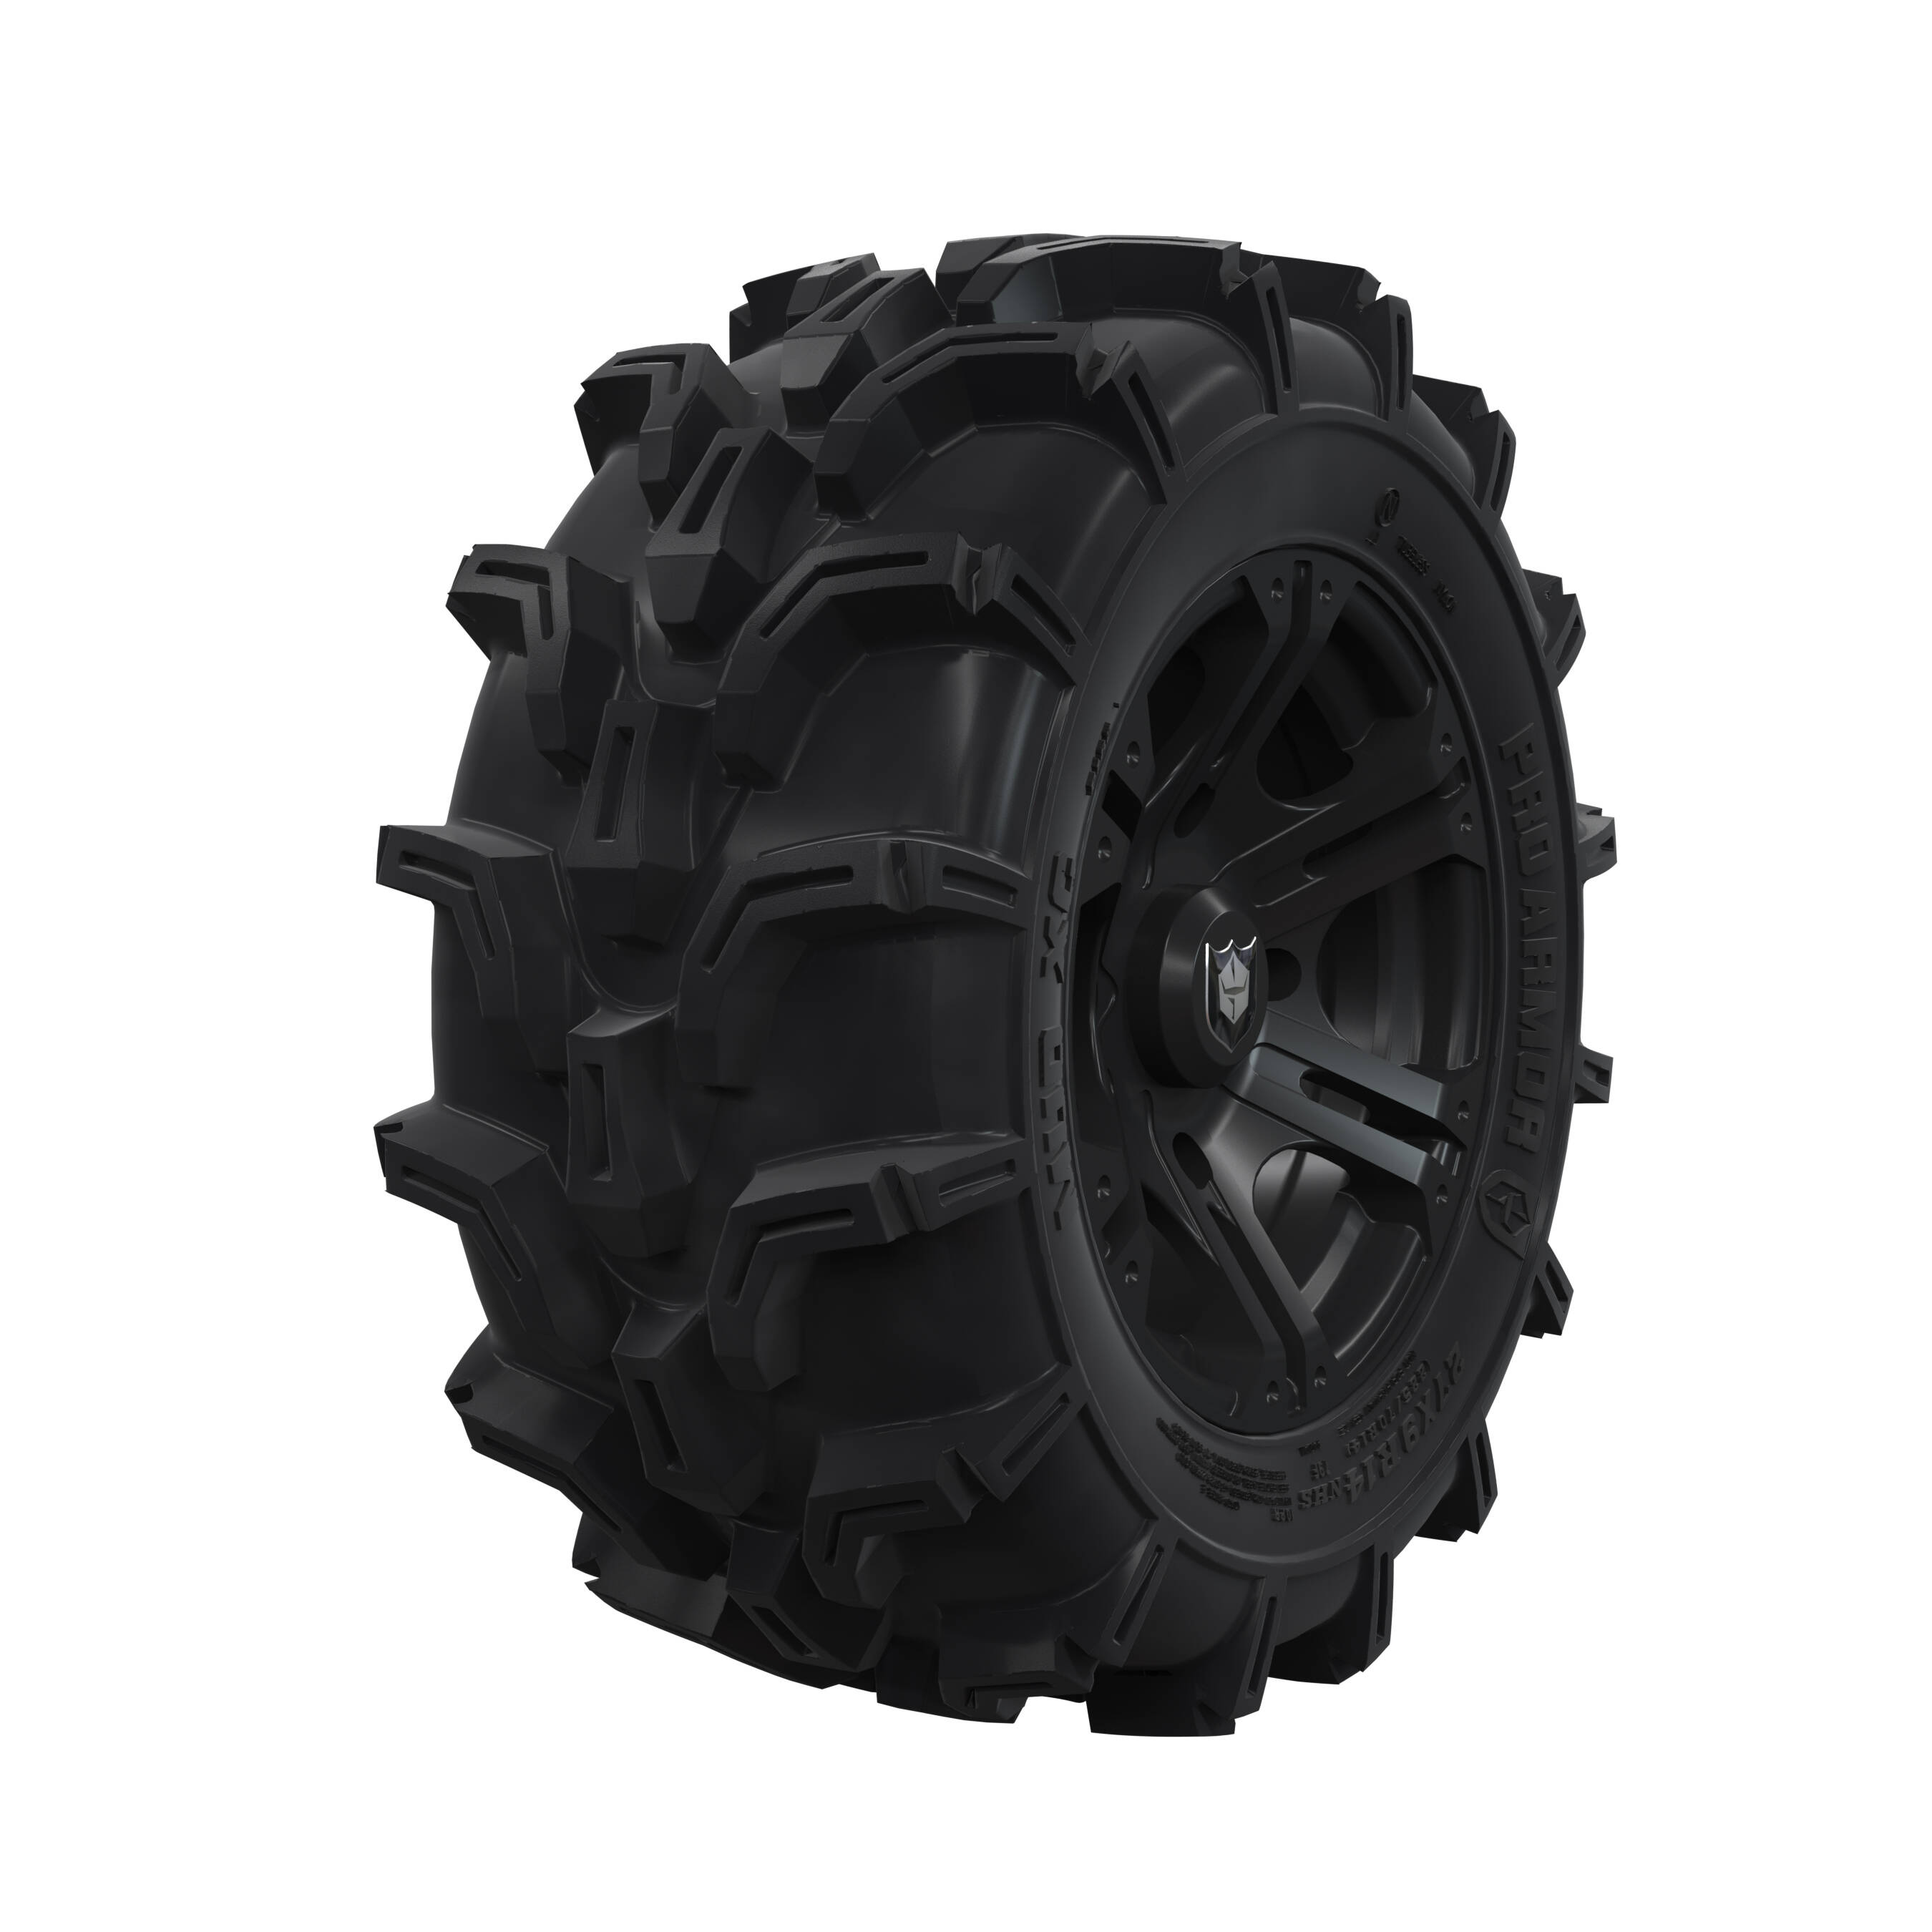 "Pro Amor® Wheel & Tire Set: Mud XC - SIXR - Matte Black - 27""R14"